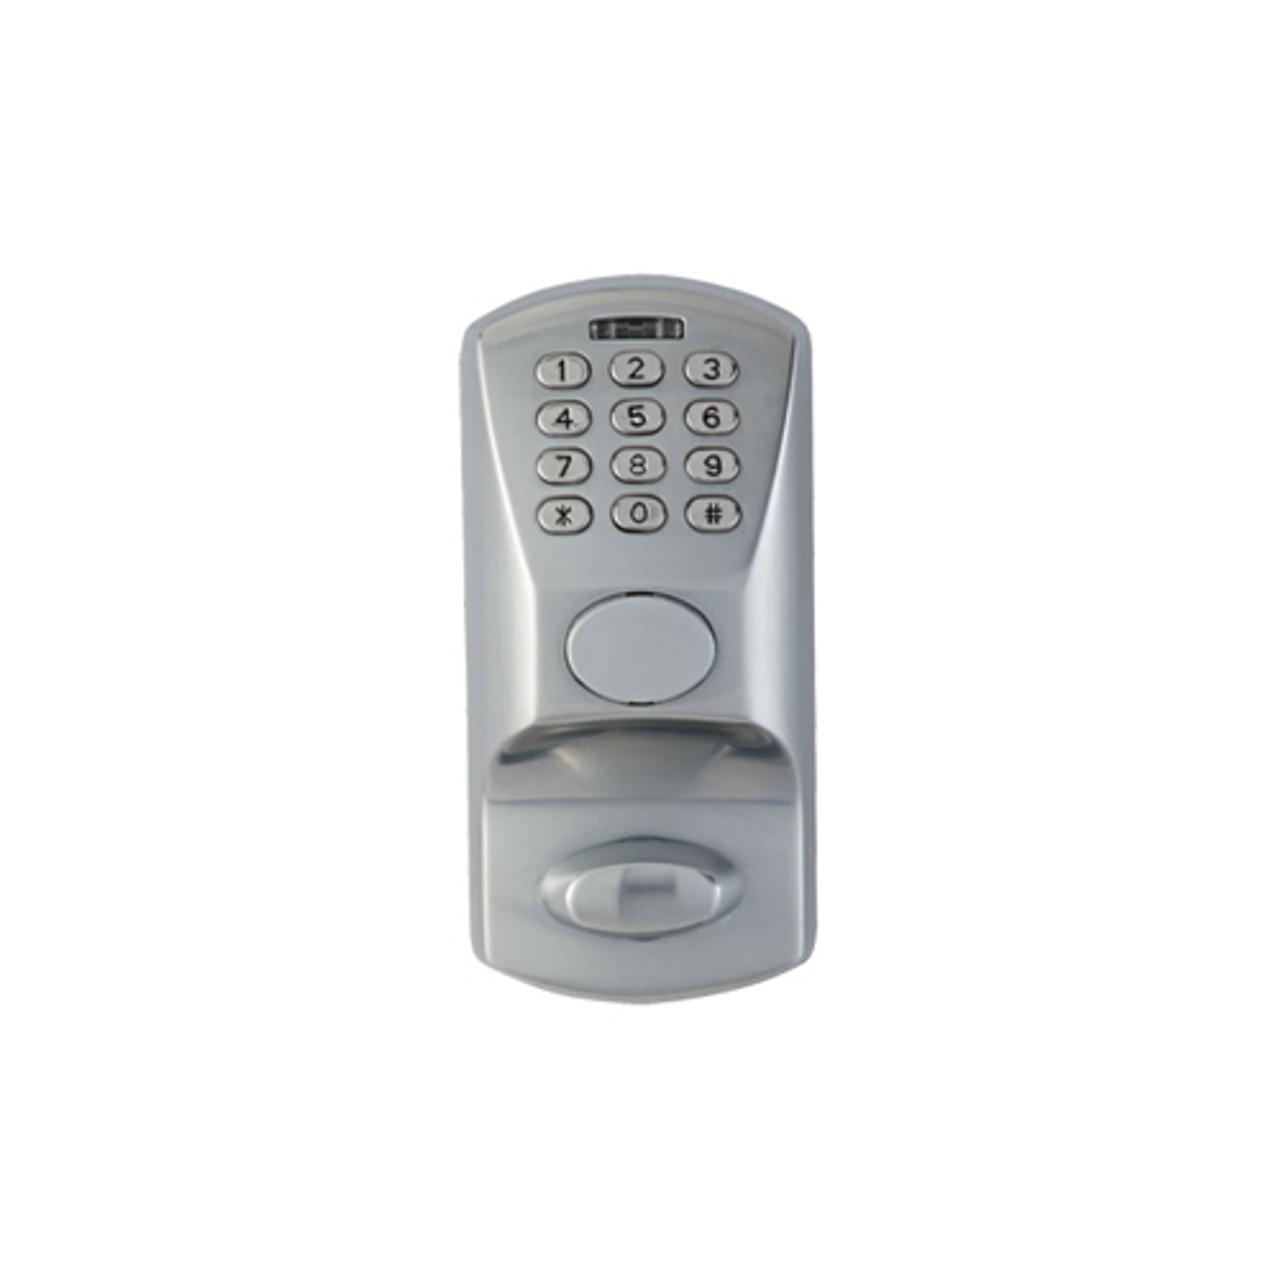 Kaba E-Plex E1502 Electronic Deadbolt Lock With Key Override on